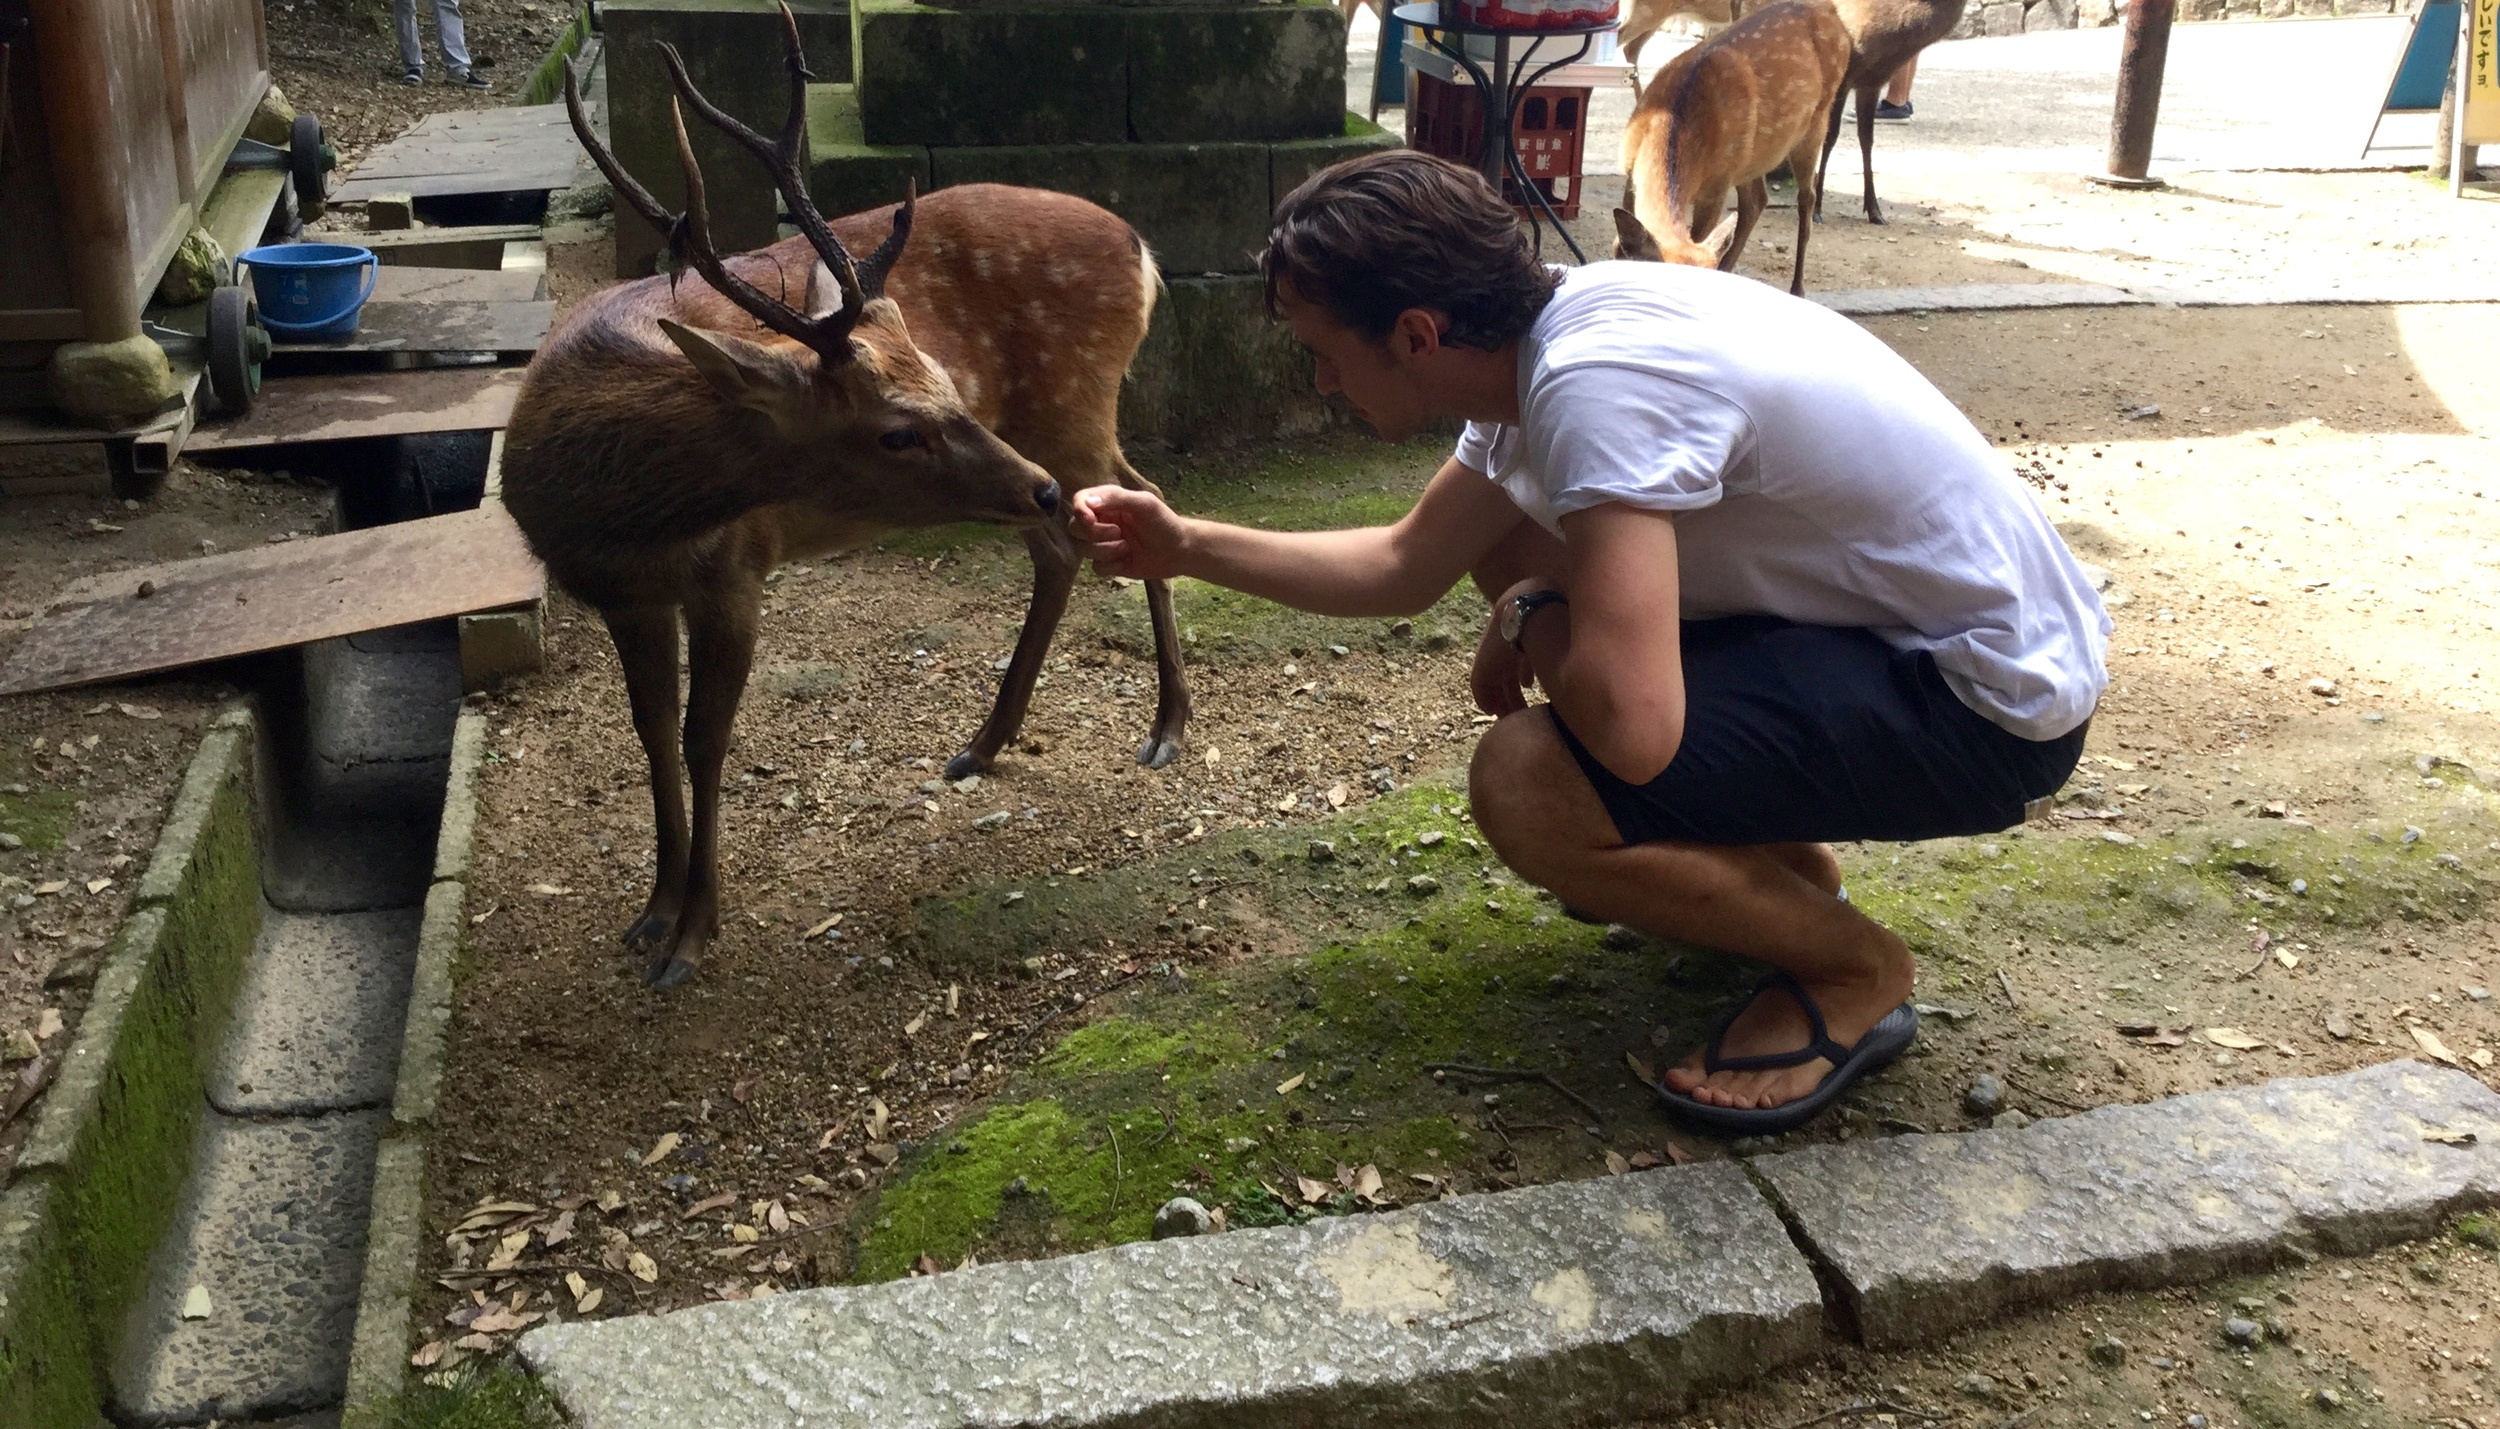 Hundreds of deer freely roam the city streets of Nara.